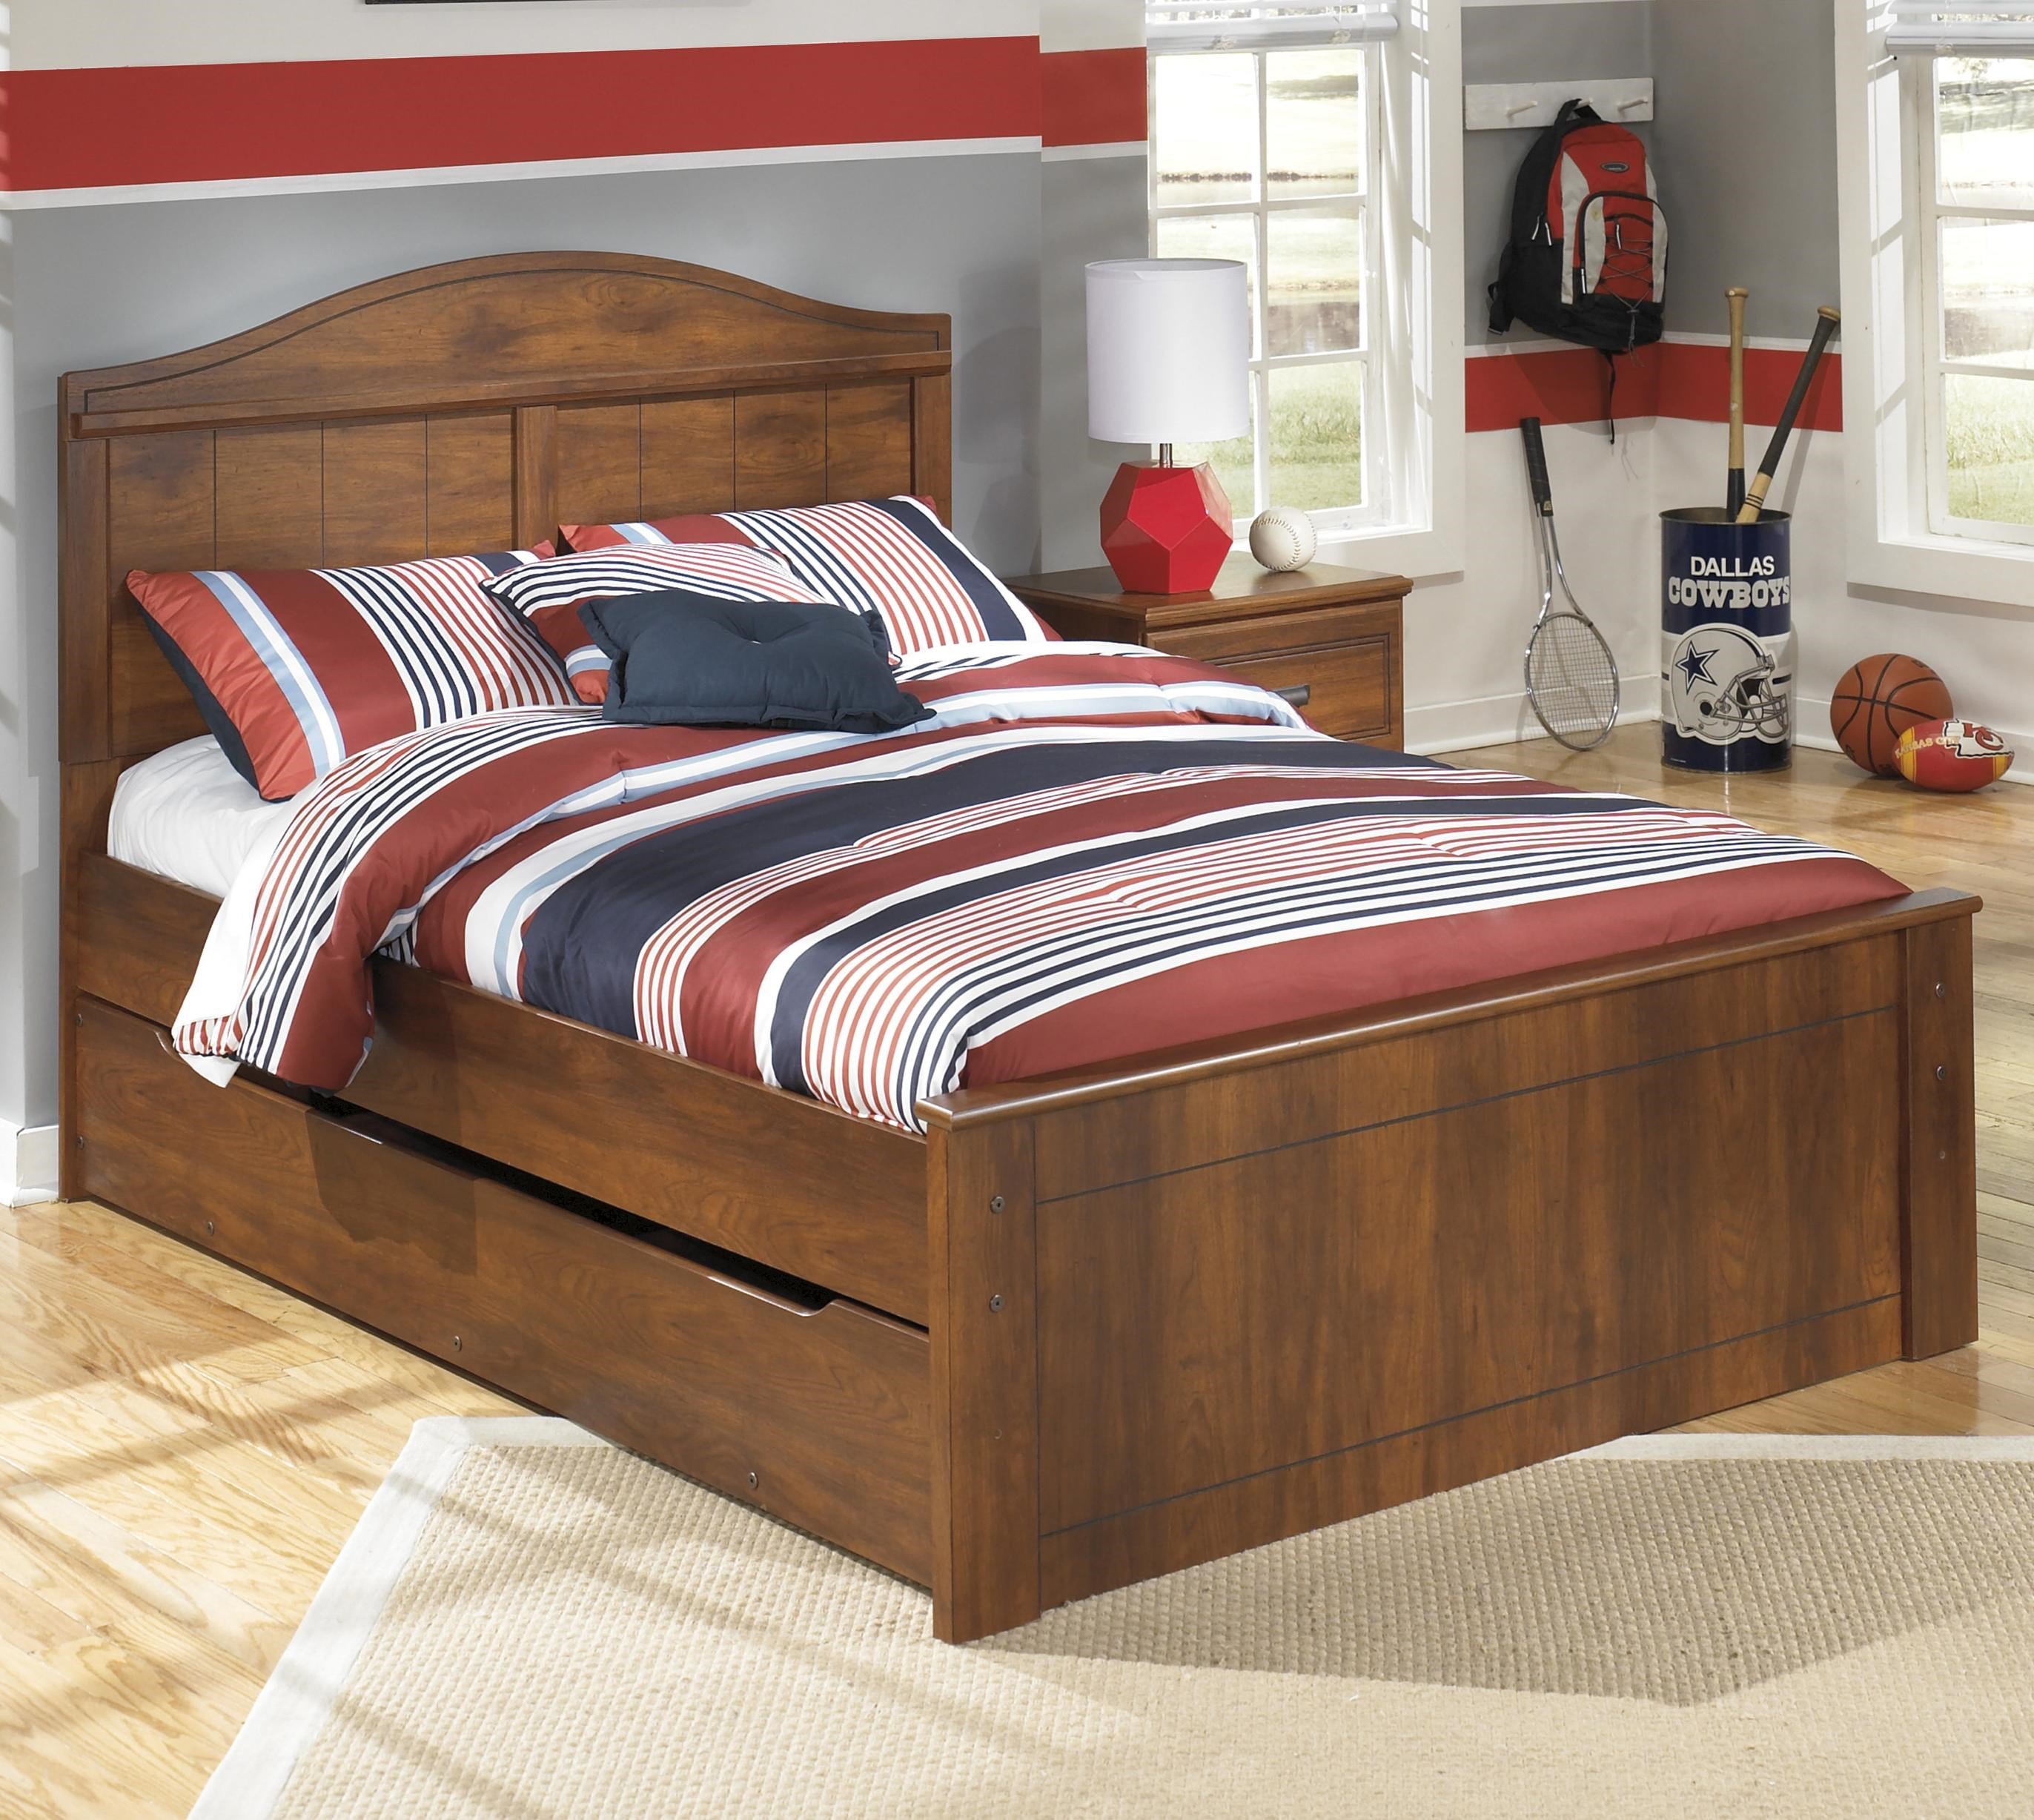 Full Panel Bed with Trundle Under Bed Storage Unit